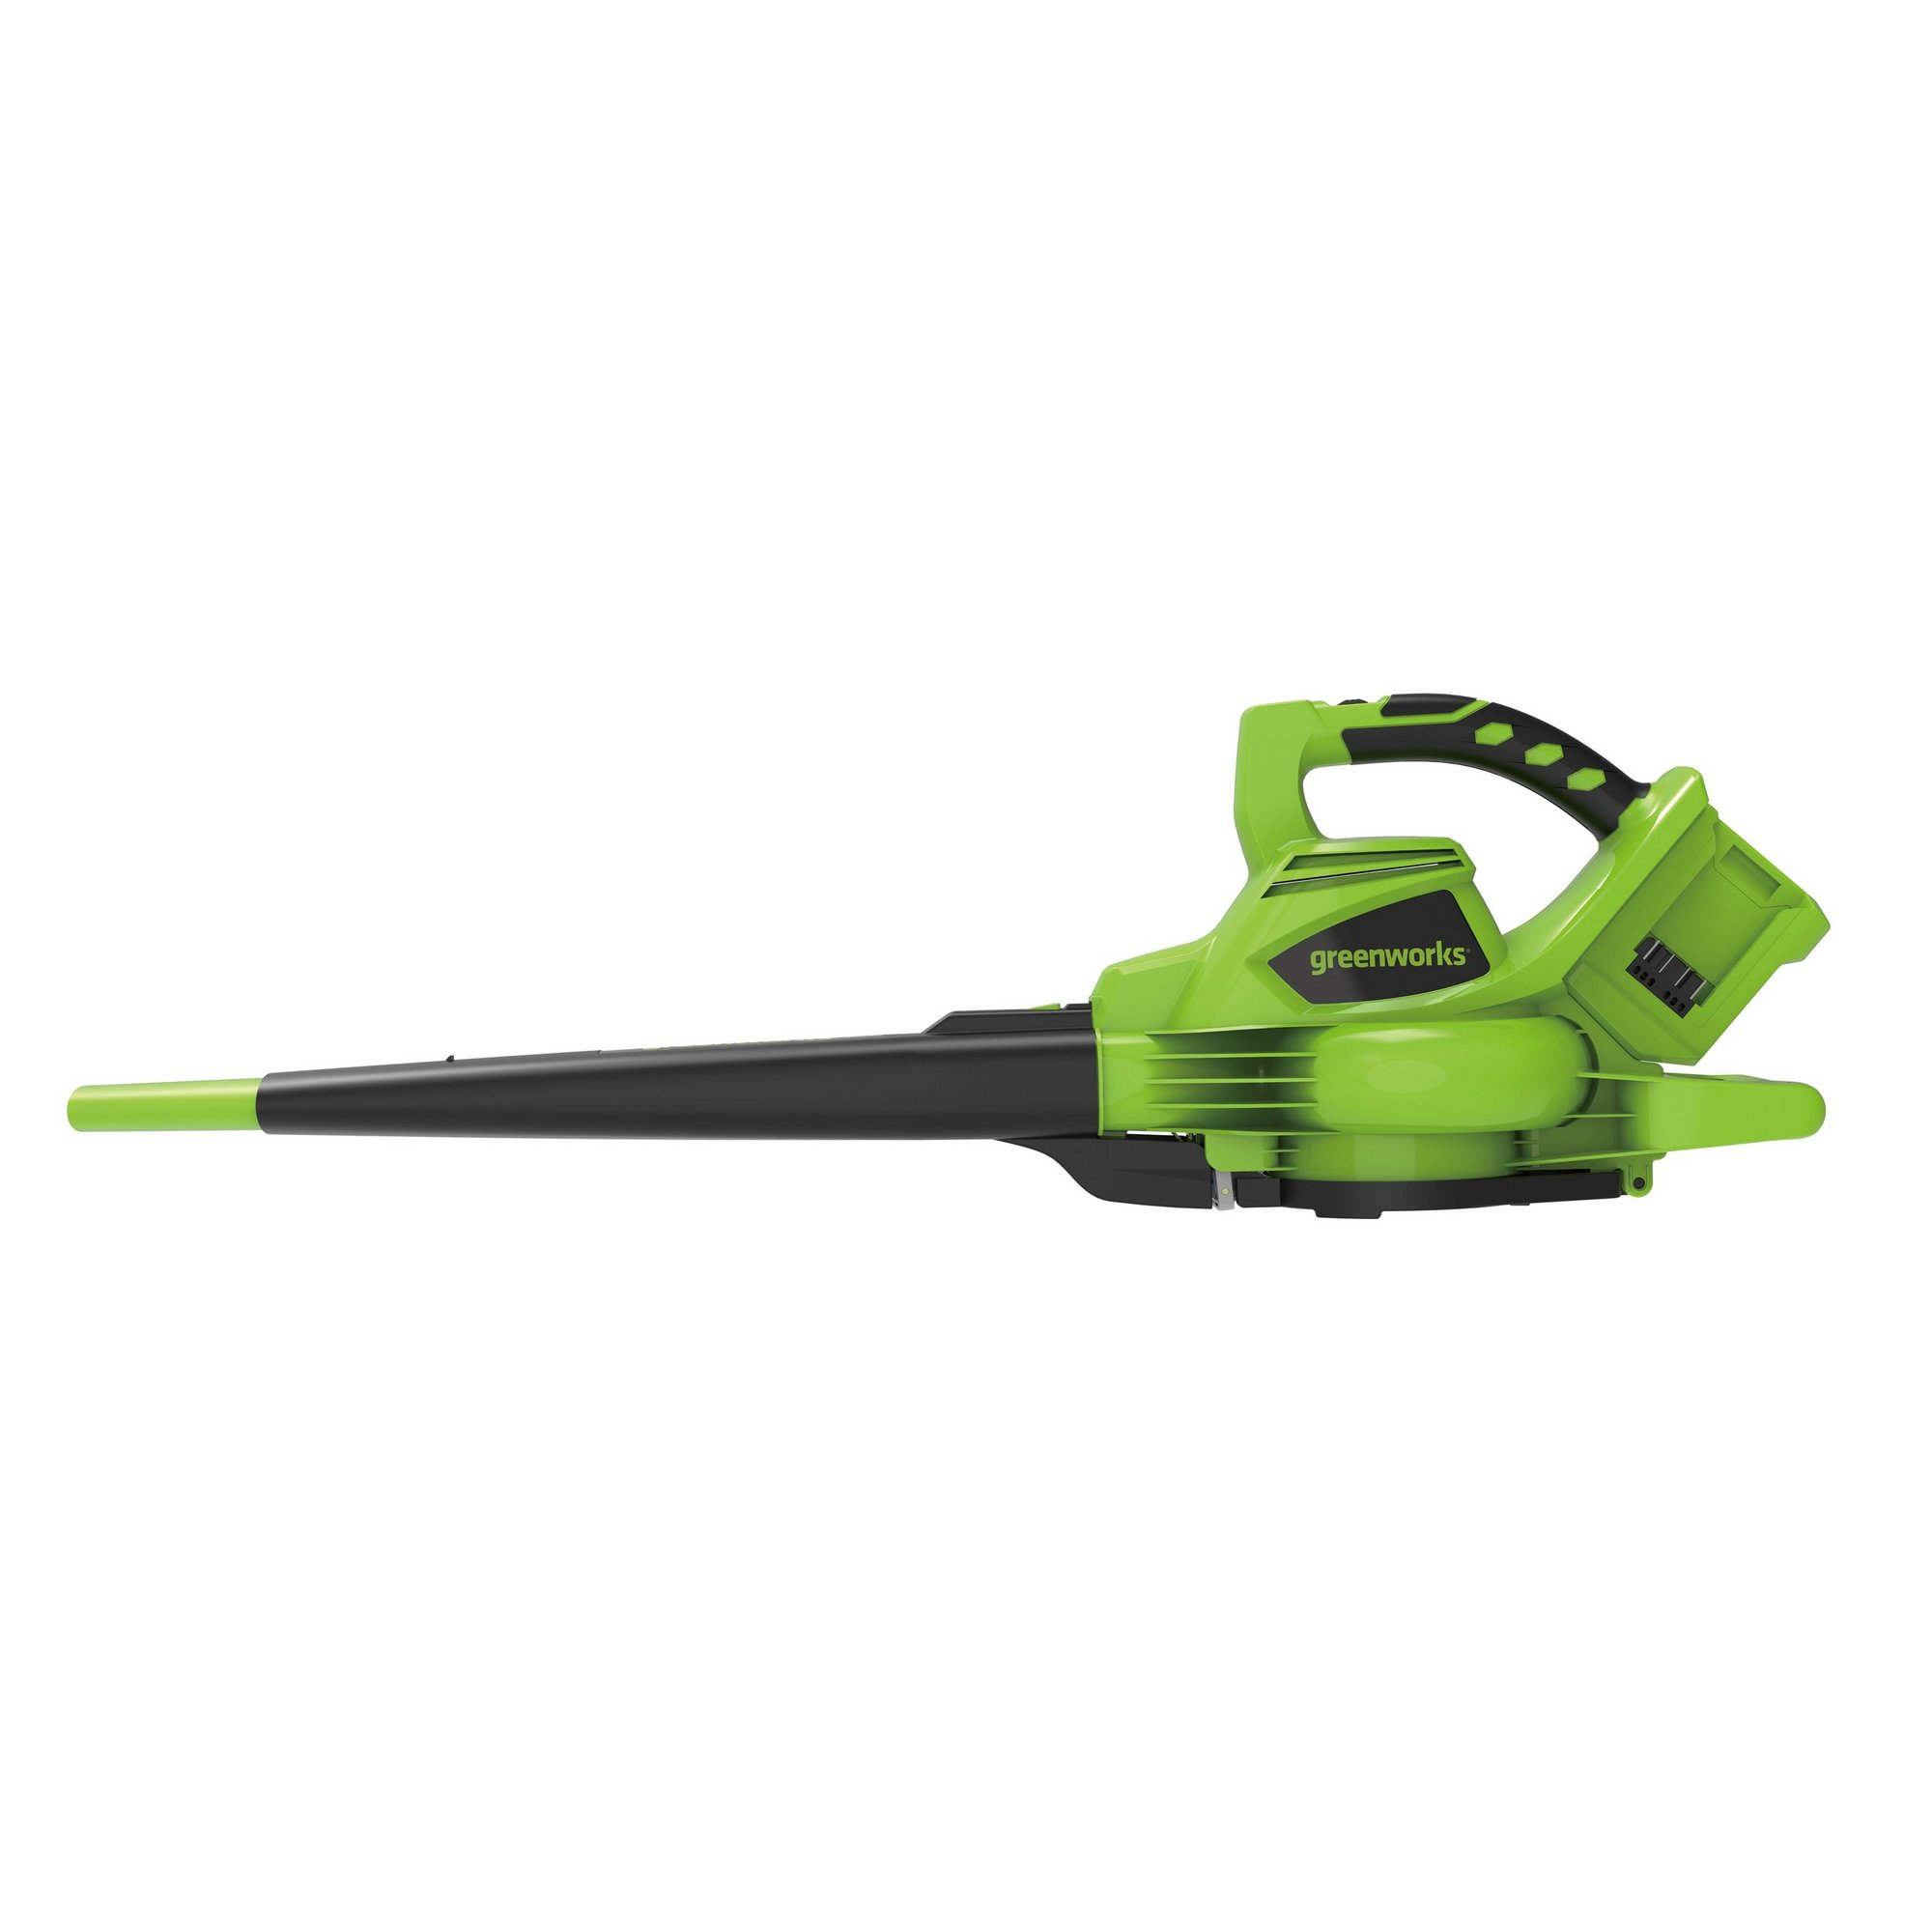 Image of Greenworks 48V Cordless Blower and Vacuum (Tool Only)